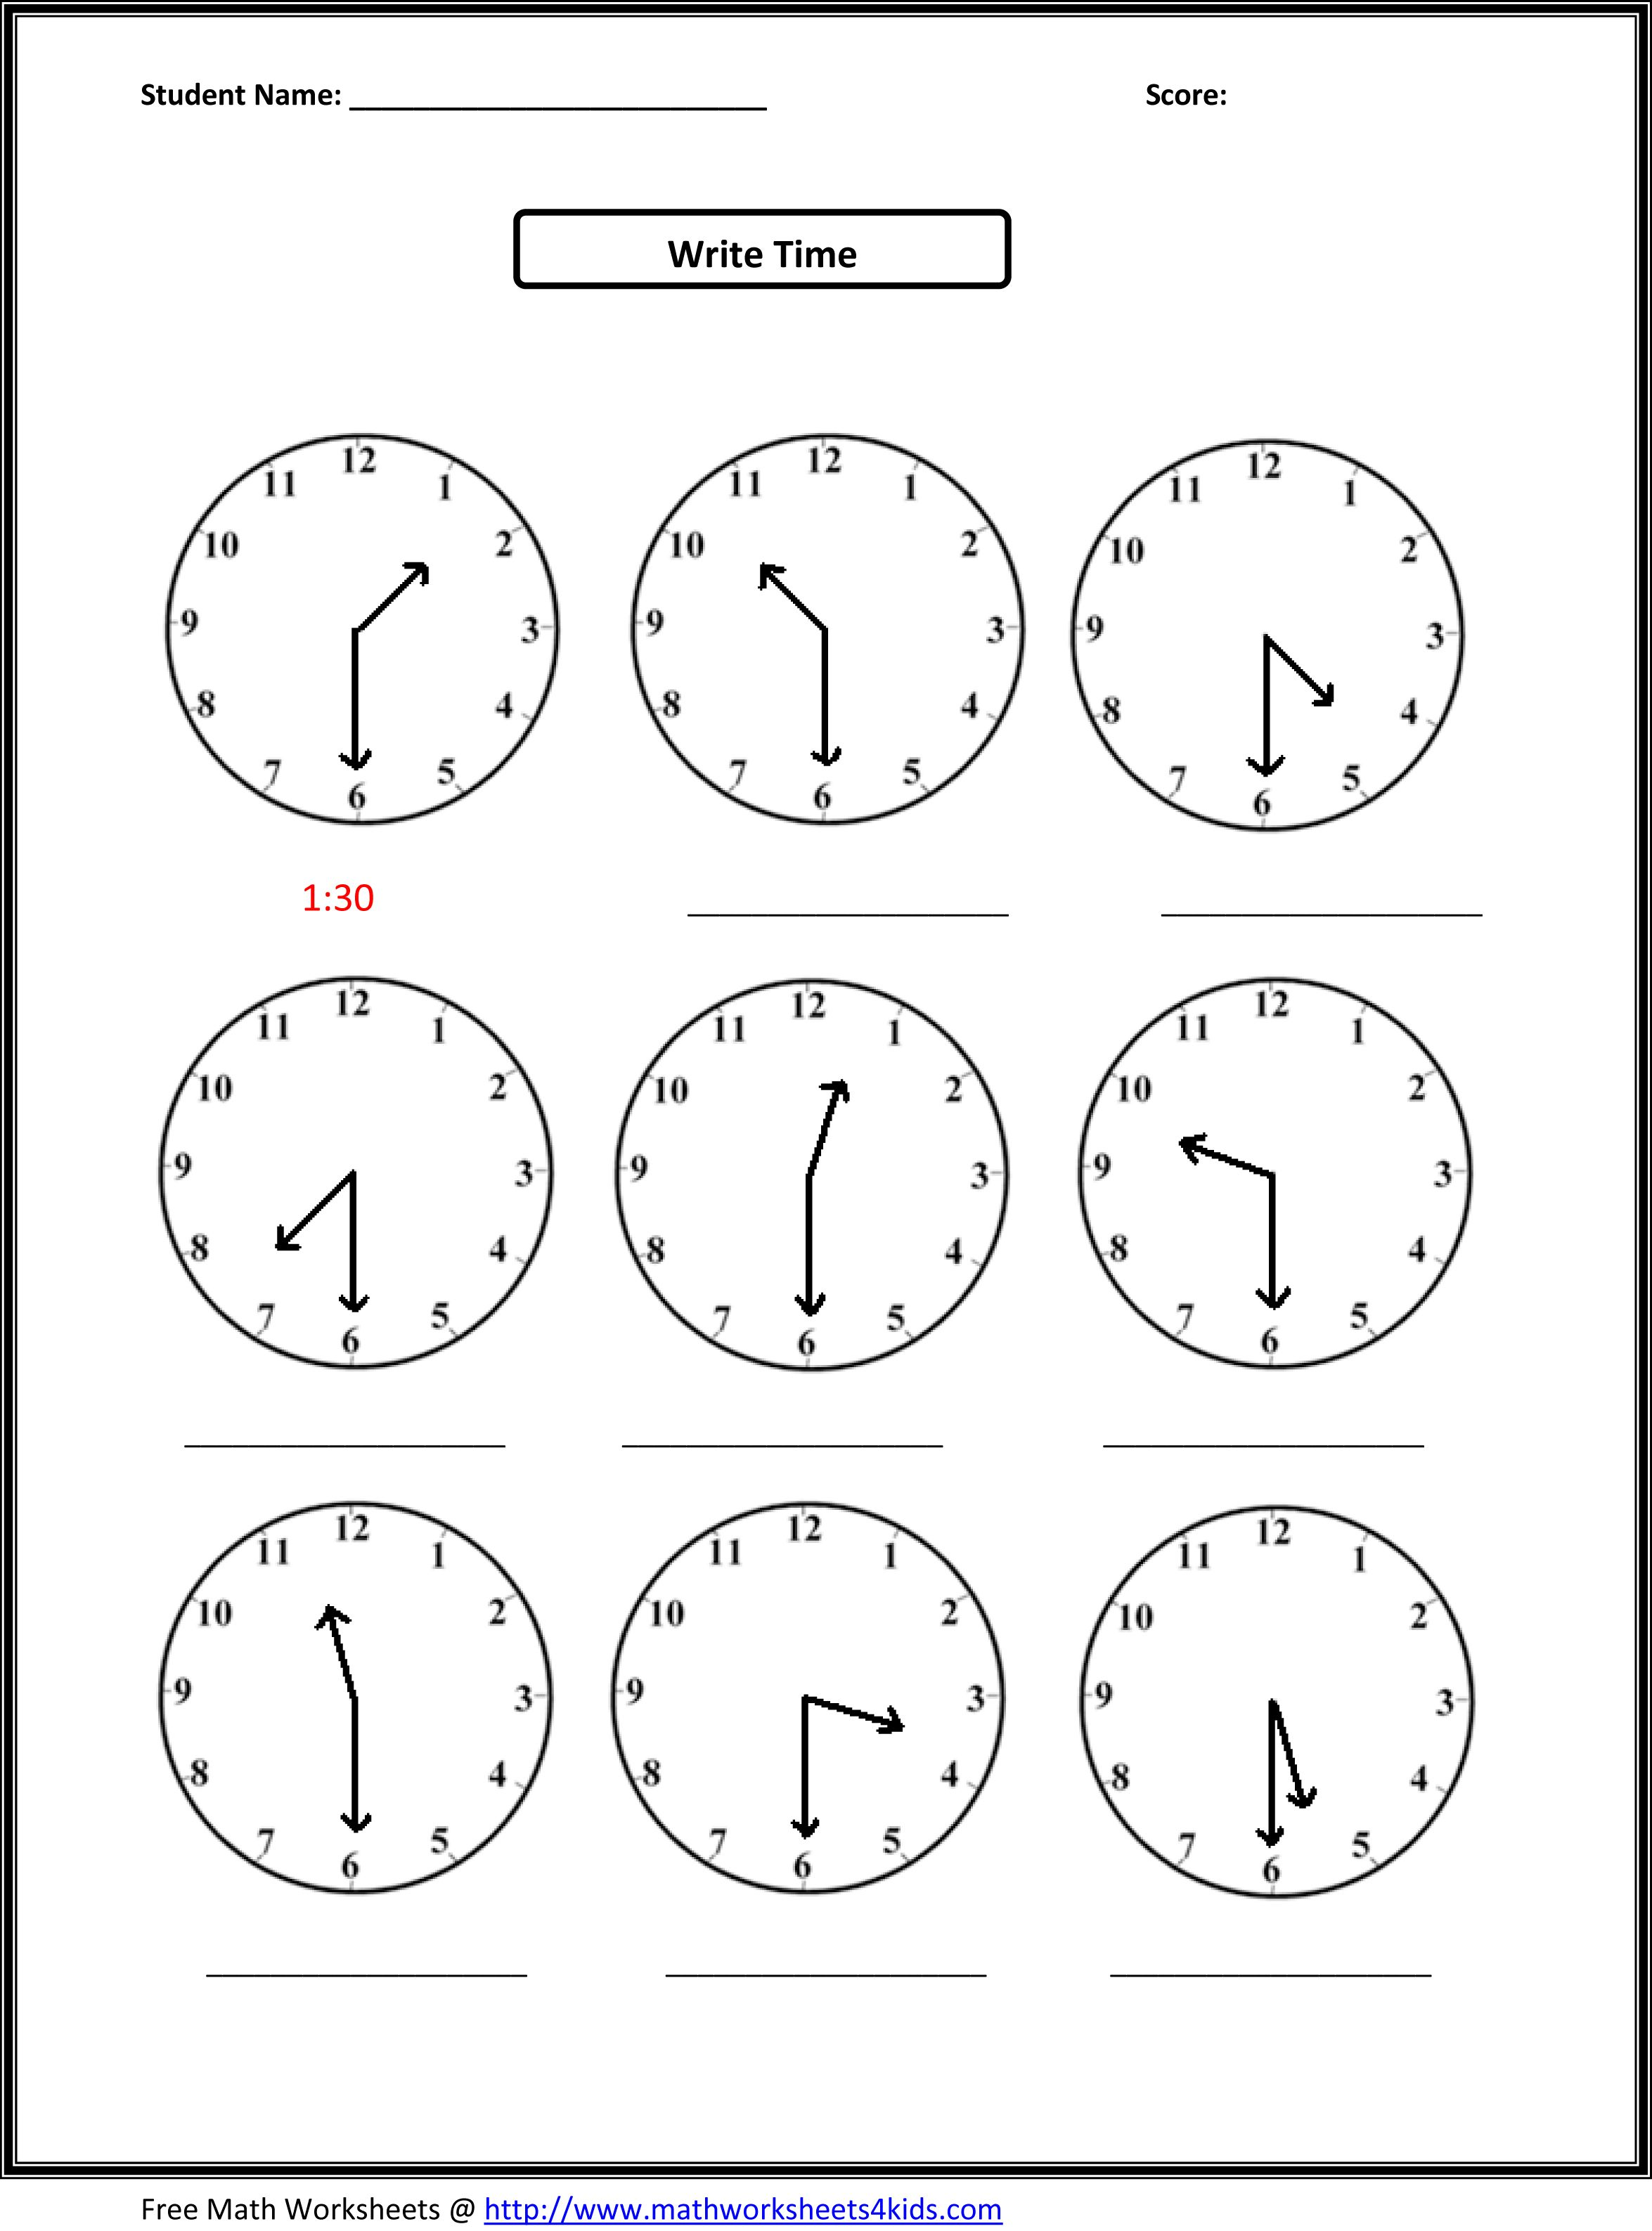 Weirdmailus  Surprising Worksheet On Time For Grade   Reocurent With Entrancing Free Printable Telling Time Worksheets Nd Grade  Reocurent With Archaic Reflexive And Intensive Pronouns Worksheet Also Roman Empire Worksheets In Addition Dred Scott Worksheet And Properties Of Multiplication Worksheets As Well As Free Printable Coordinate Graphing Worksheets Additionally Water Worksheet From Reocurentcom With Weirdmailus  Entrancing Worksheet On Time For Grade   Reocurent With Archaic Free Printable Telling Time Worksheets Nd Grade  Reocurent And Surprising Reflexive And Intensive Pronouns Worksheet Also Roman Empire Worksheets In Addition Dred Scott Worksheet From Reocurentcom